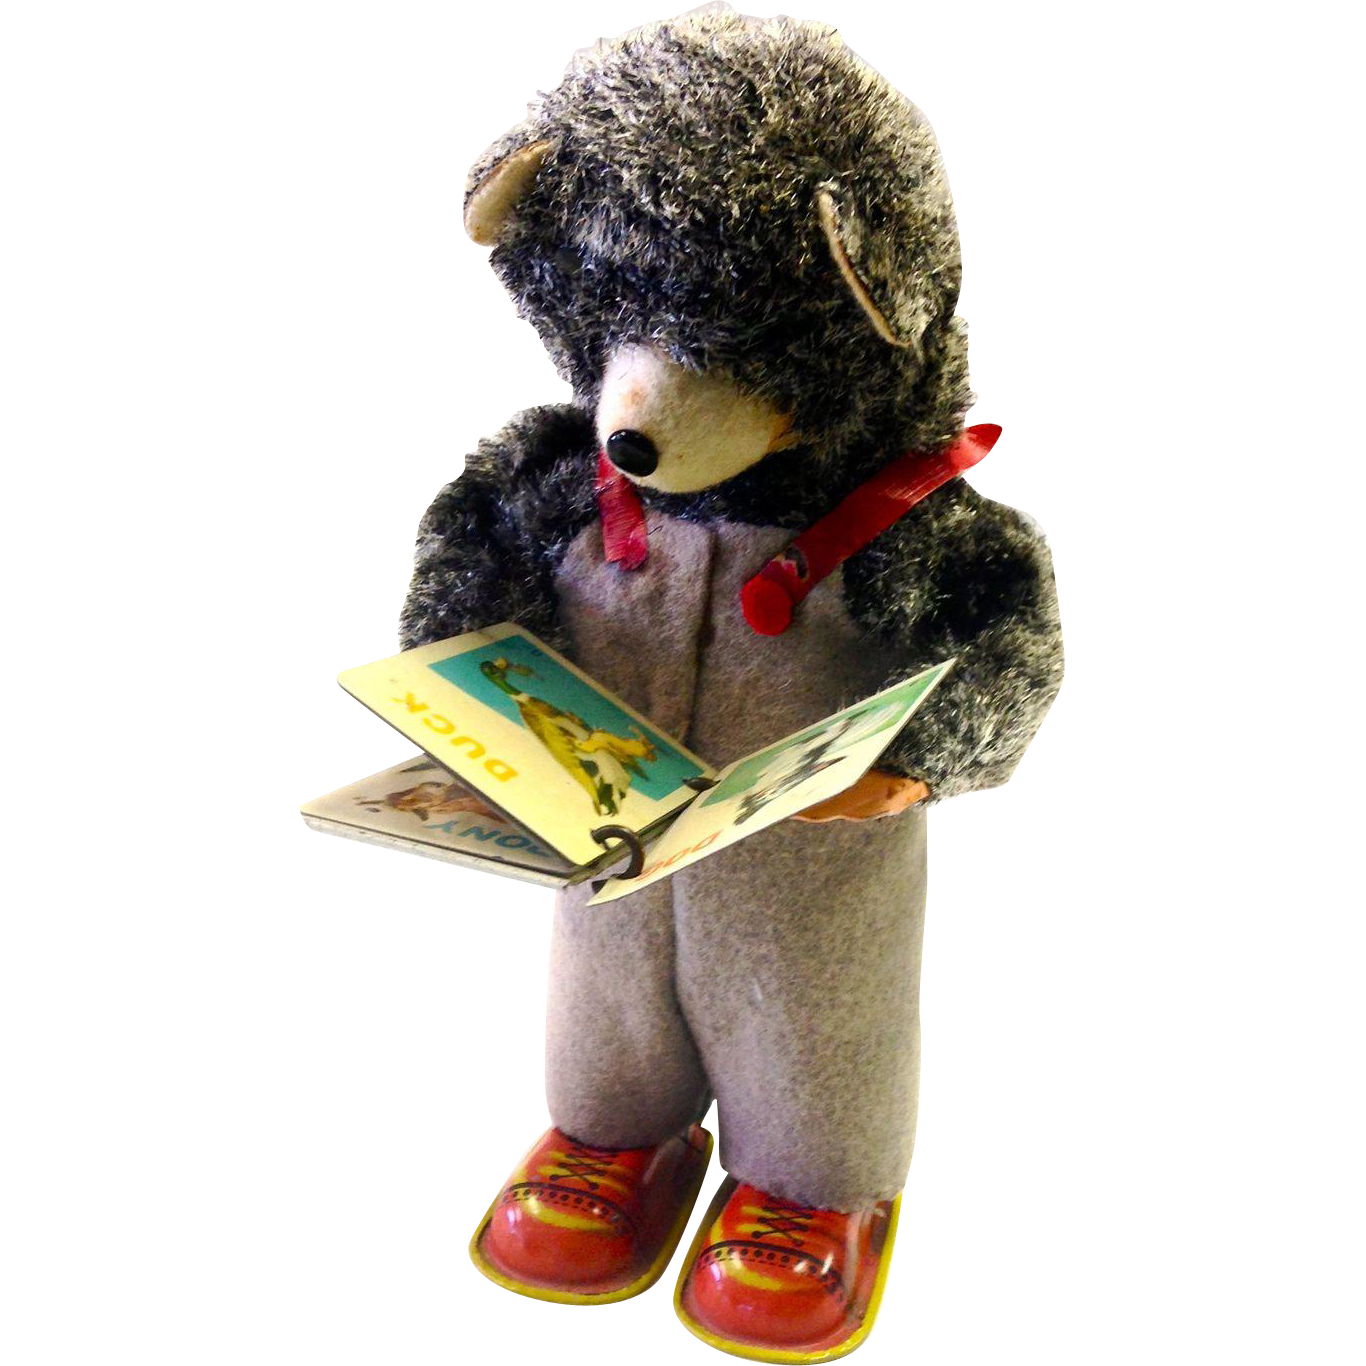 Wind up bear reading a book